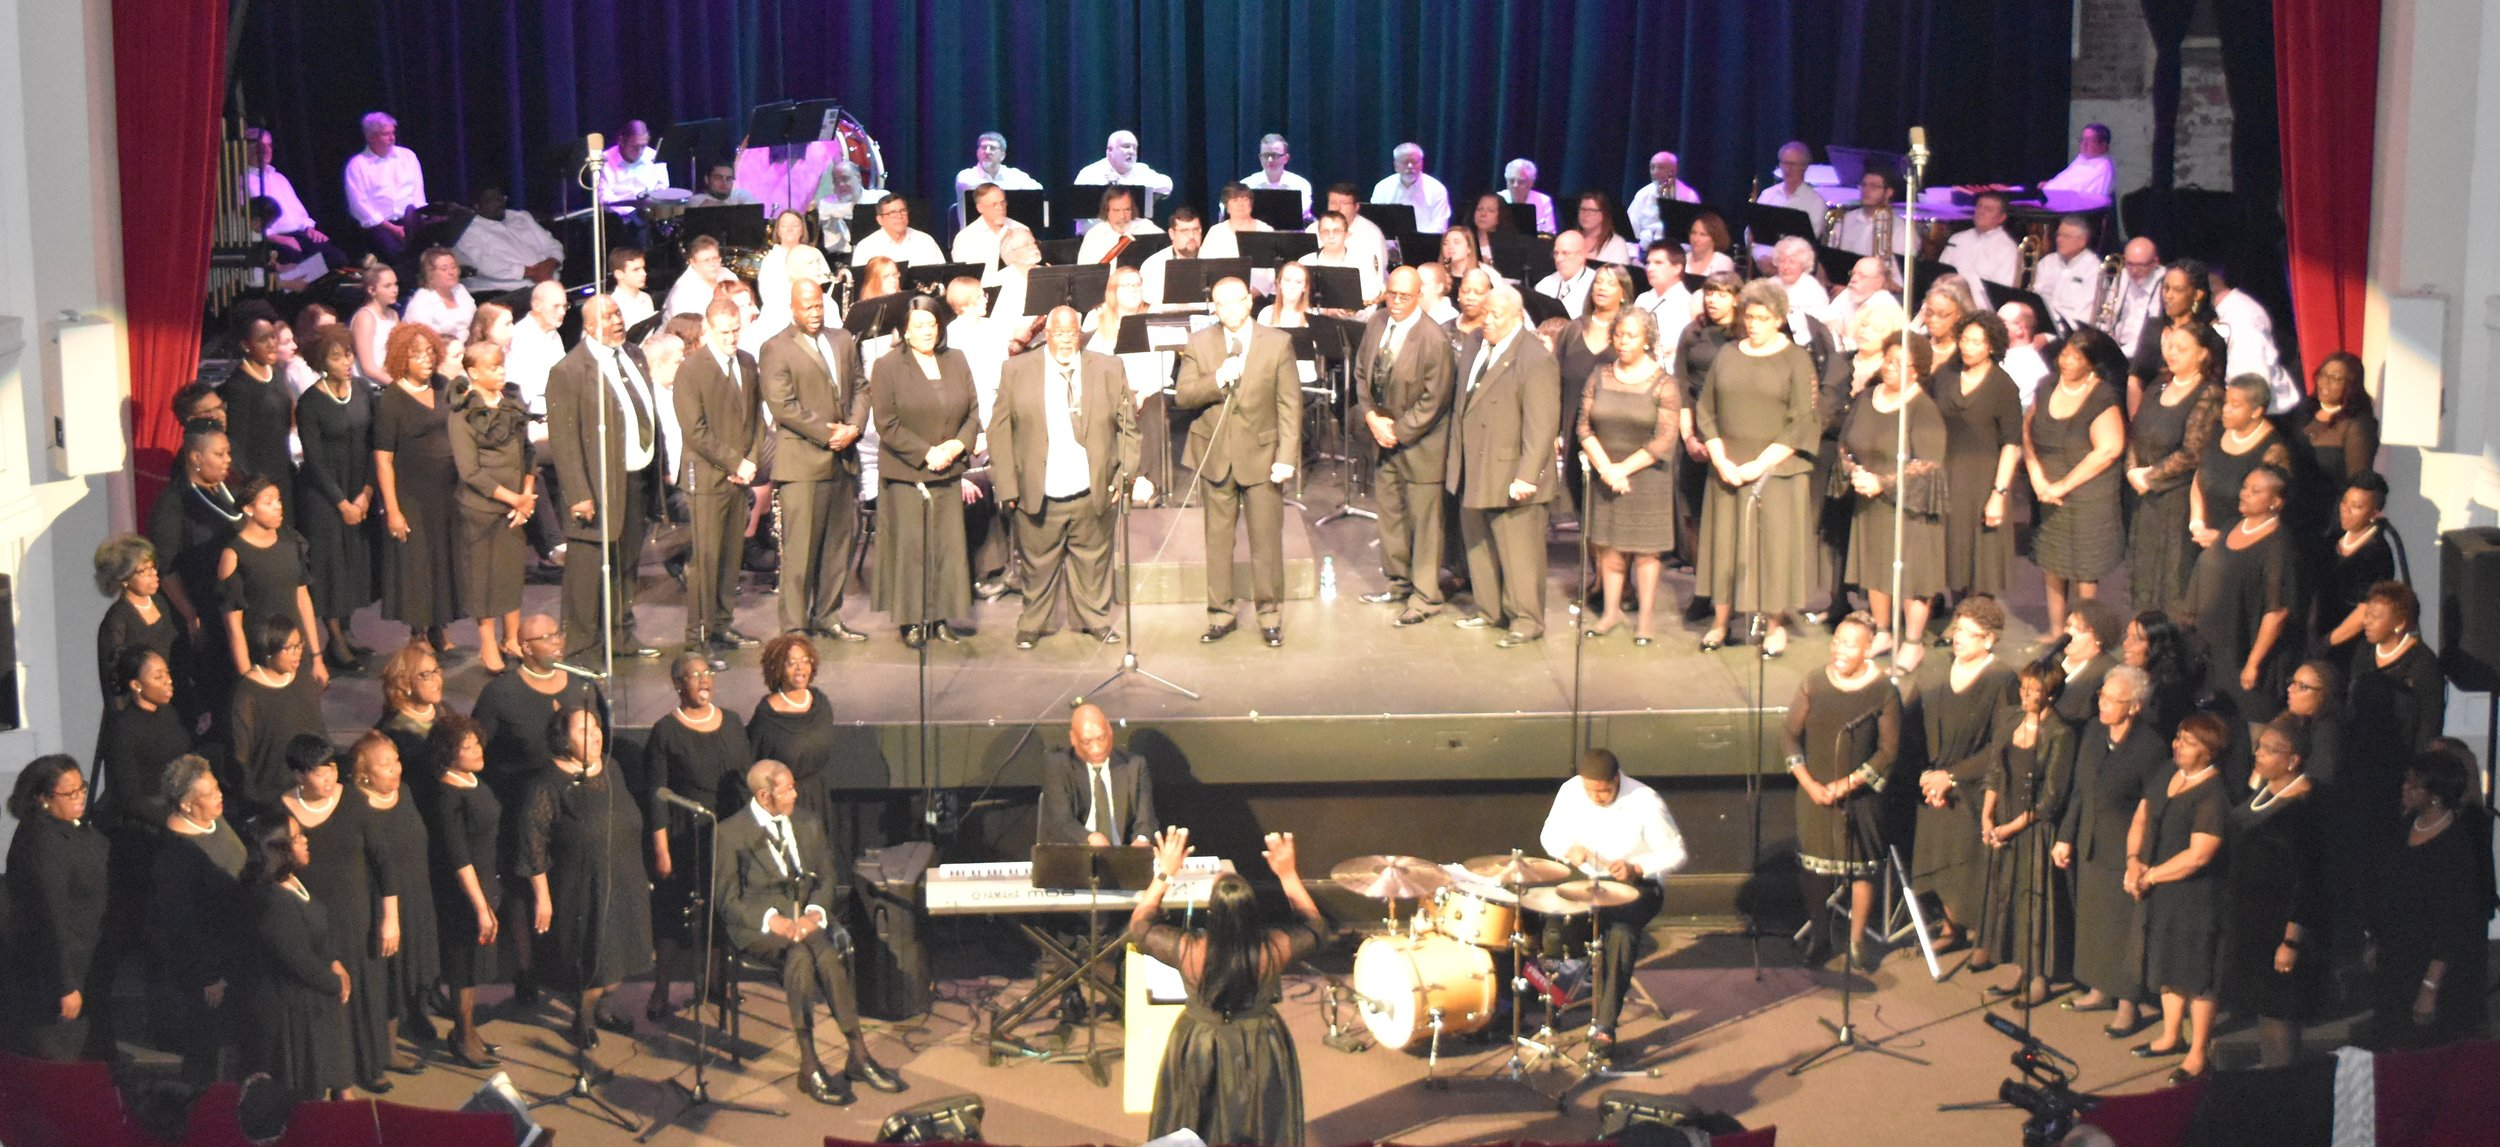 """10/08/19 7:30pm Rome City Auditorium    """"Milestones""""   NW GA WINDS performs music honoring auspicious anniversaries: the founding of Rome, Georgia; D-Day; the Moon Landing; and others.  Free Admission"""